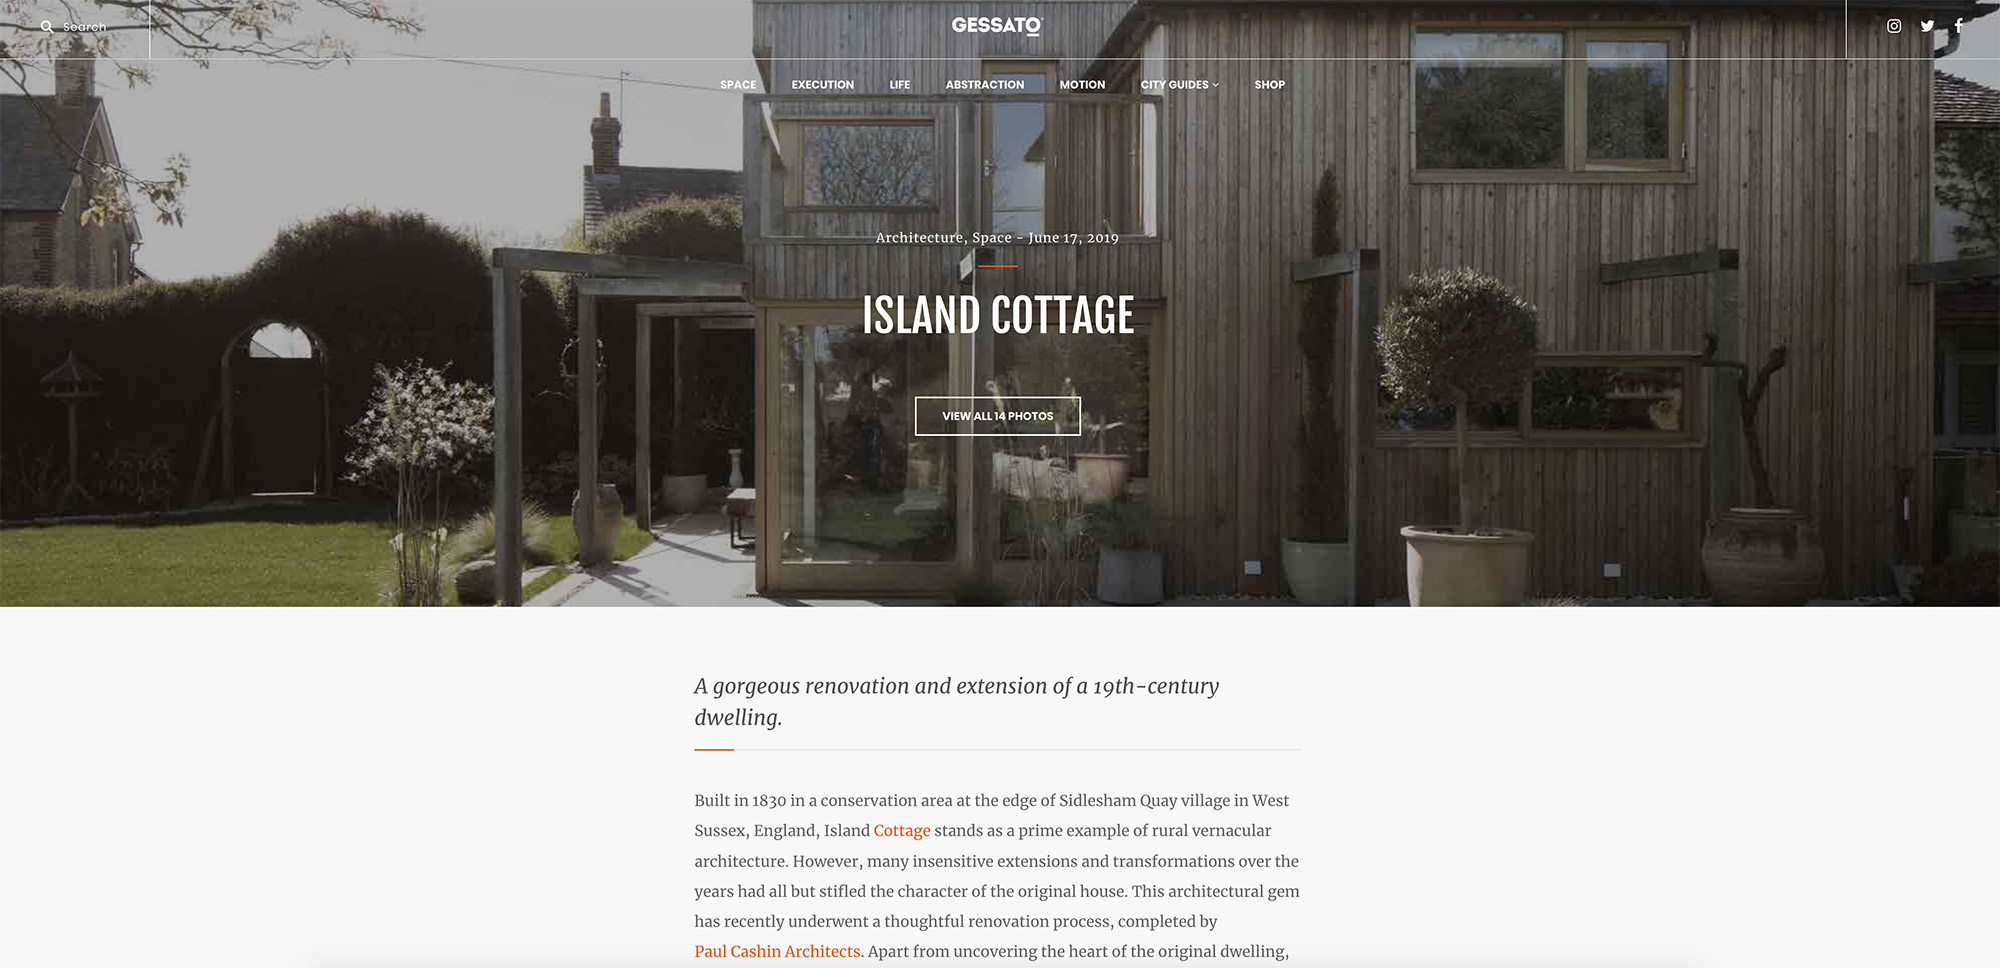 06.19 Island Cottage featured on Gessato